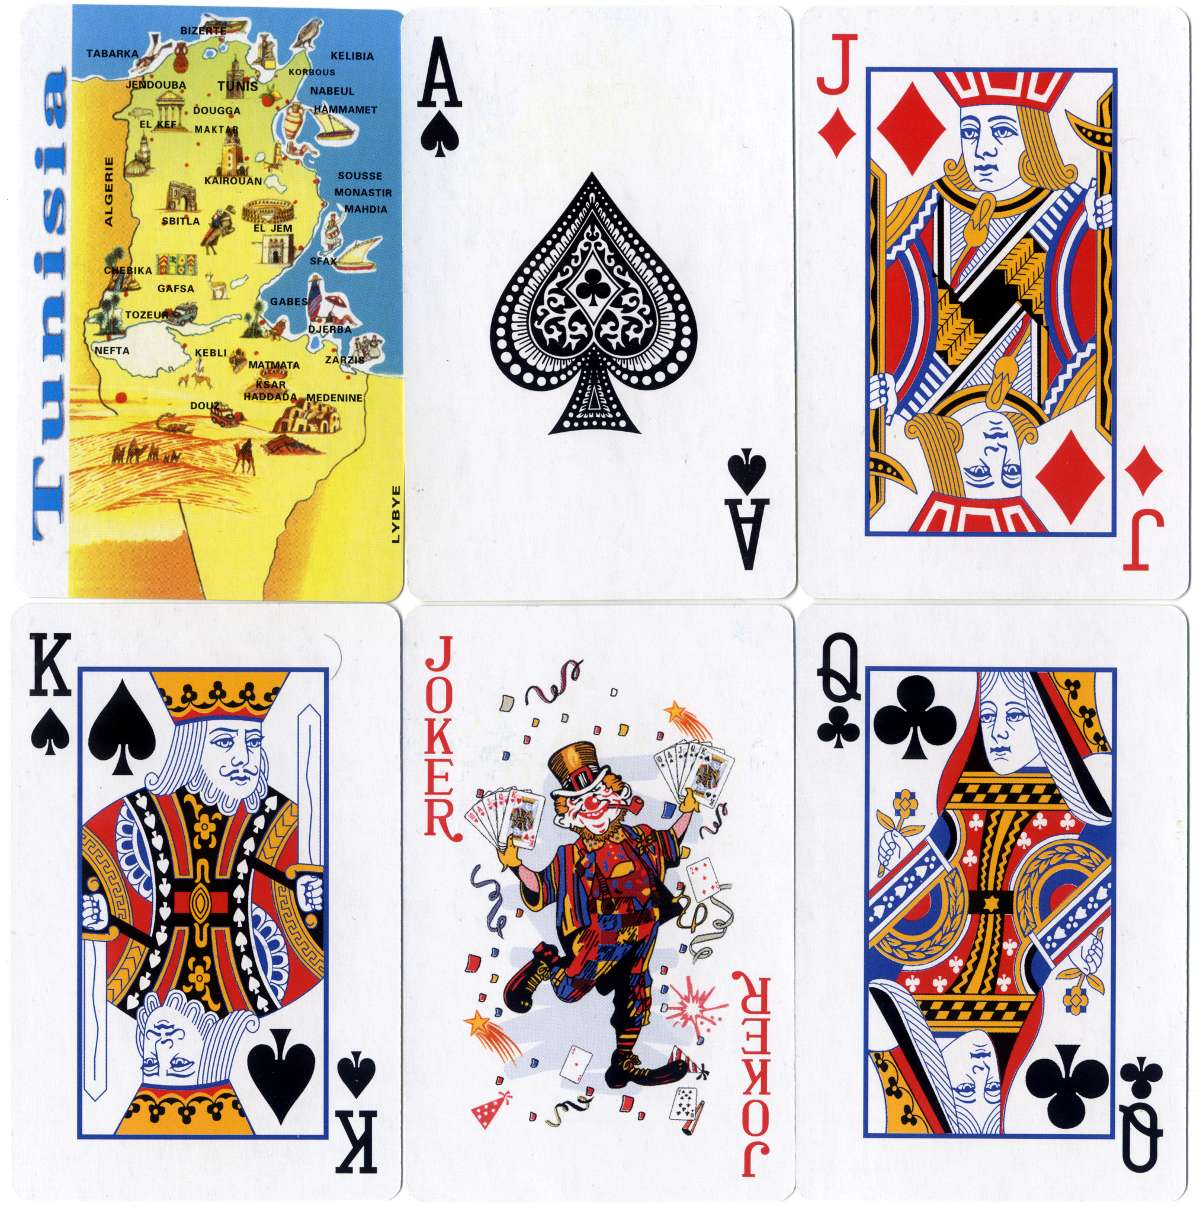 Tunisia souvenir playing-cards made in China